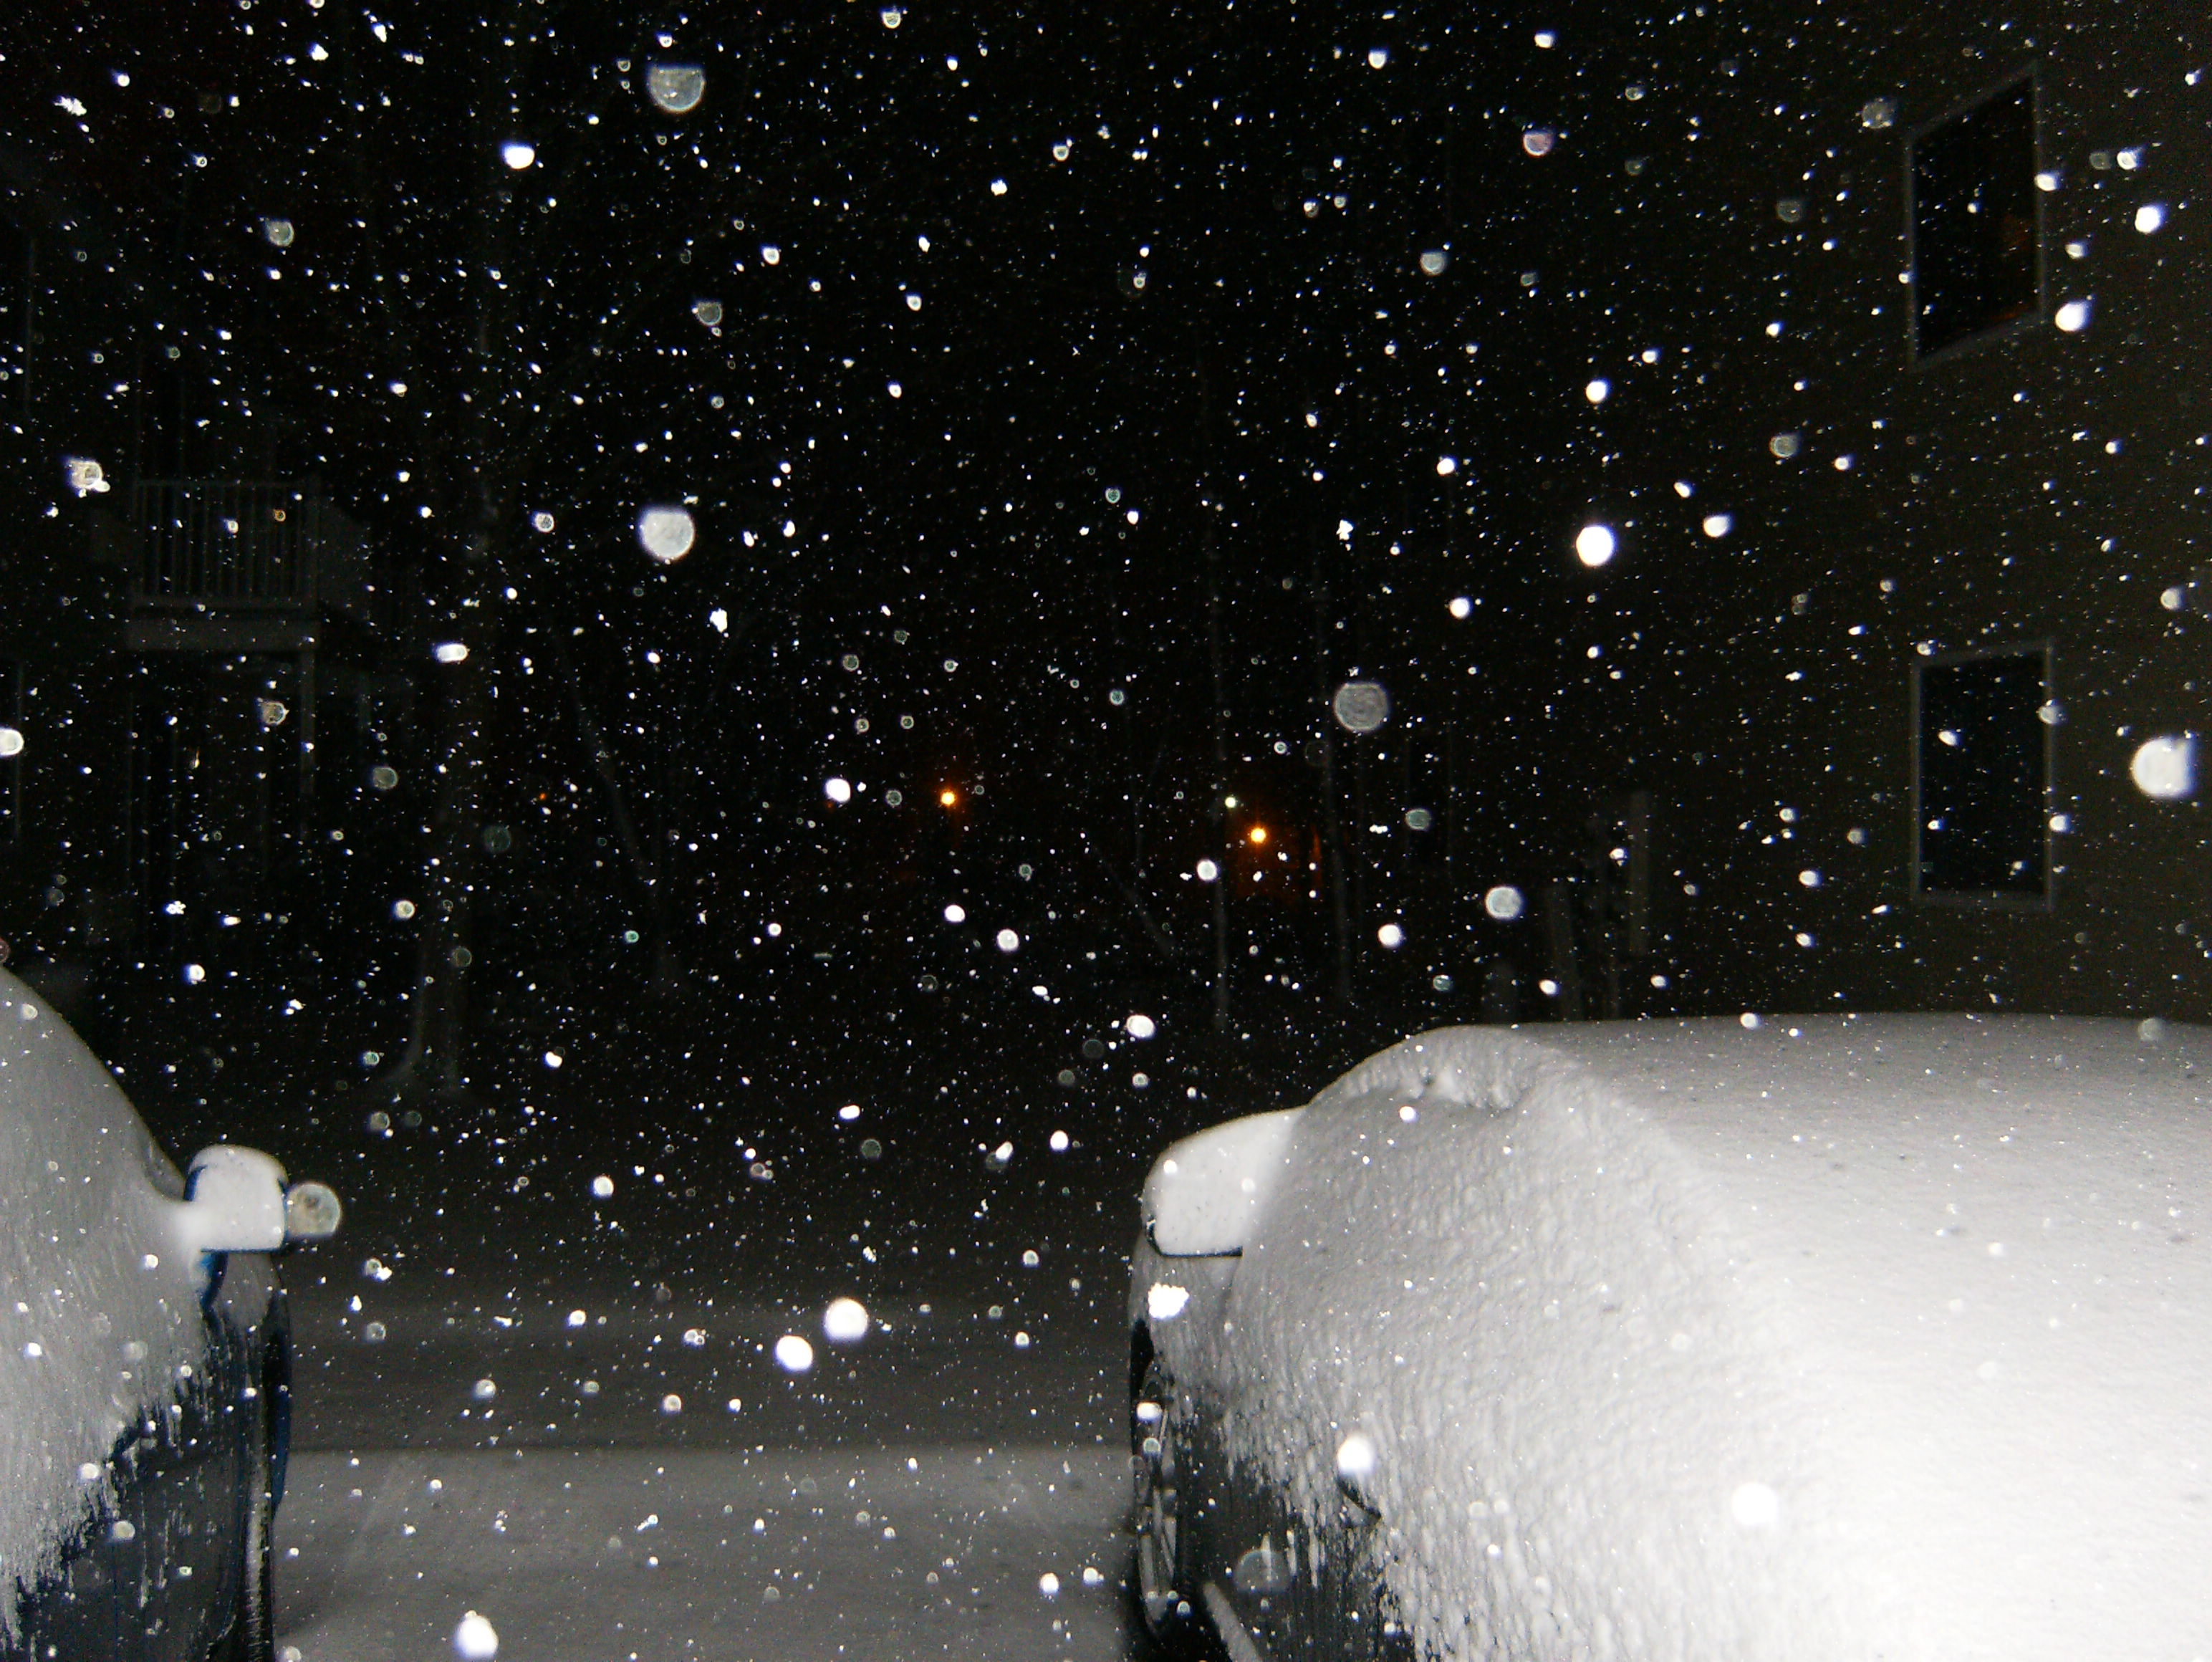 Snow Falling At Night Wallpaper Snowy Night 171 The Schleicher Spin